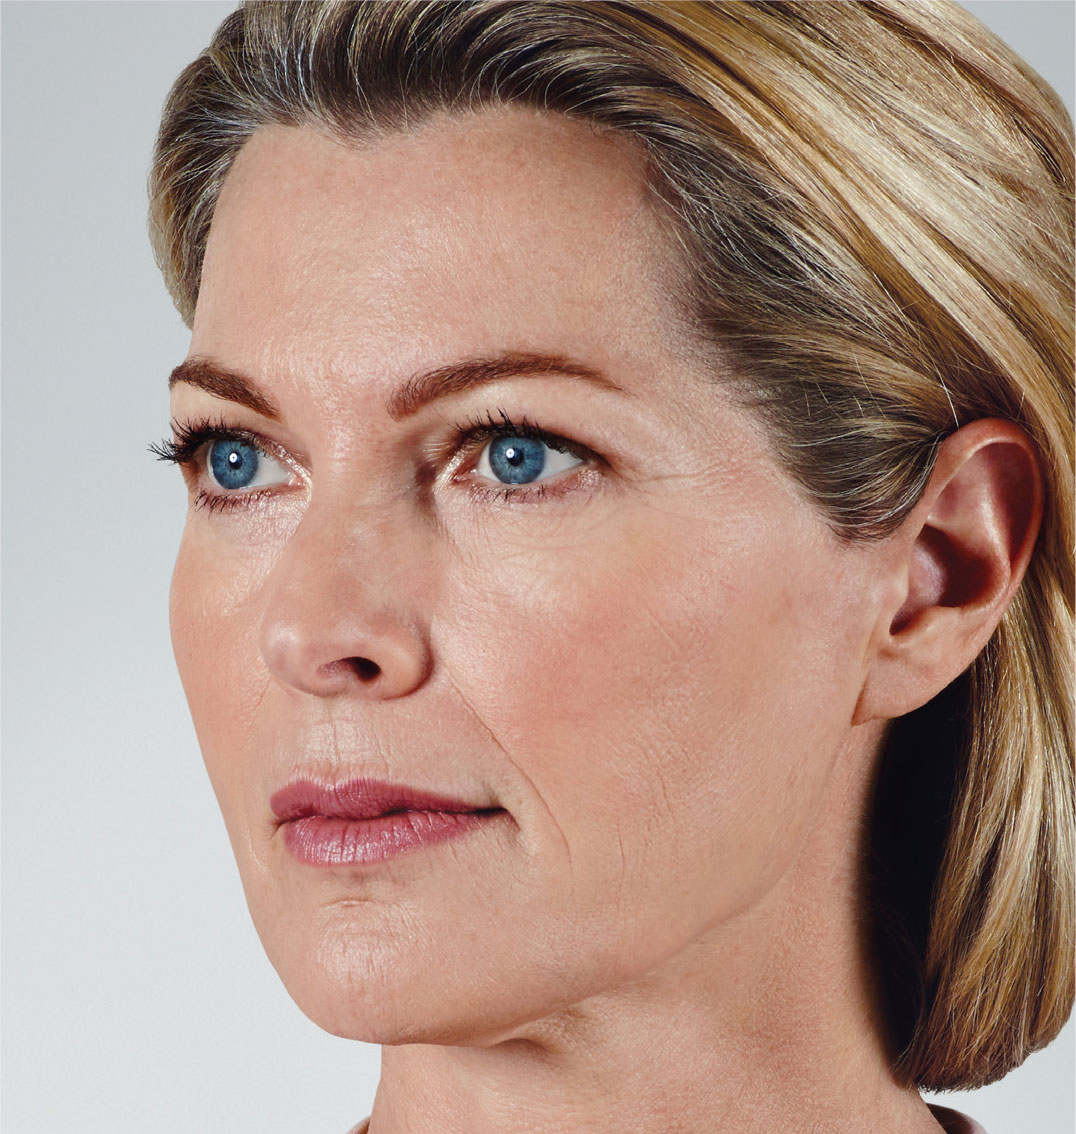 lady with facial age lines